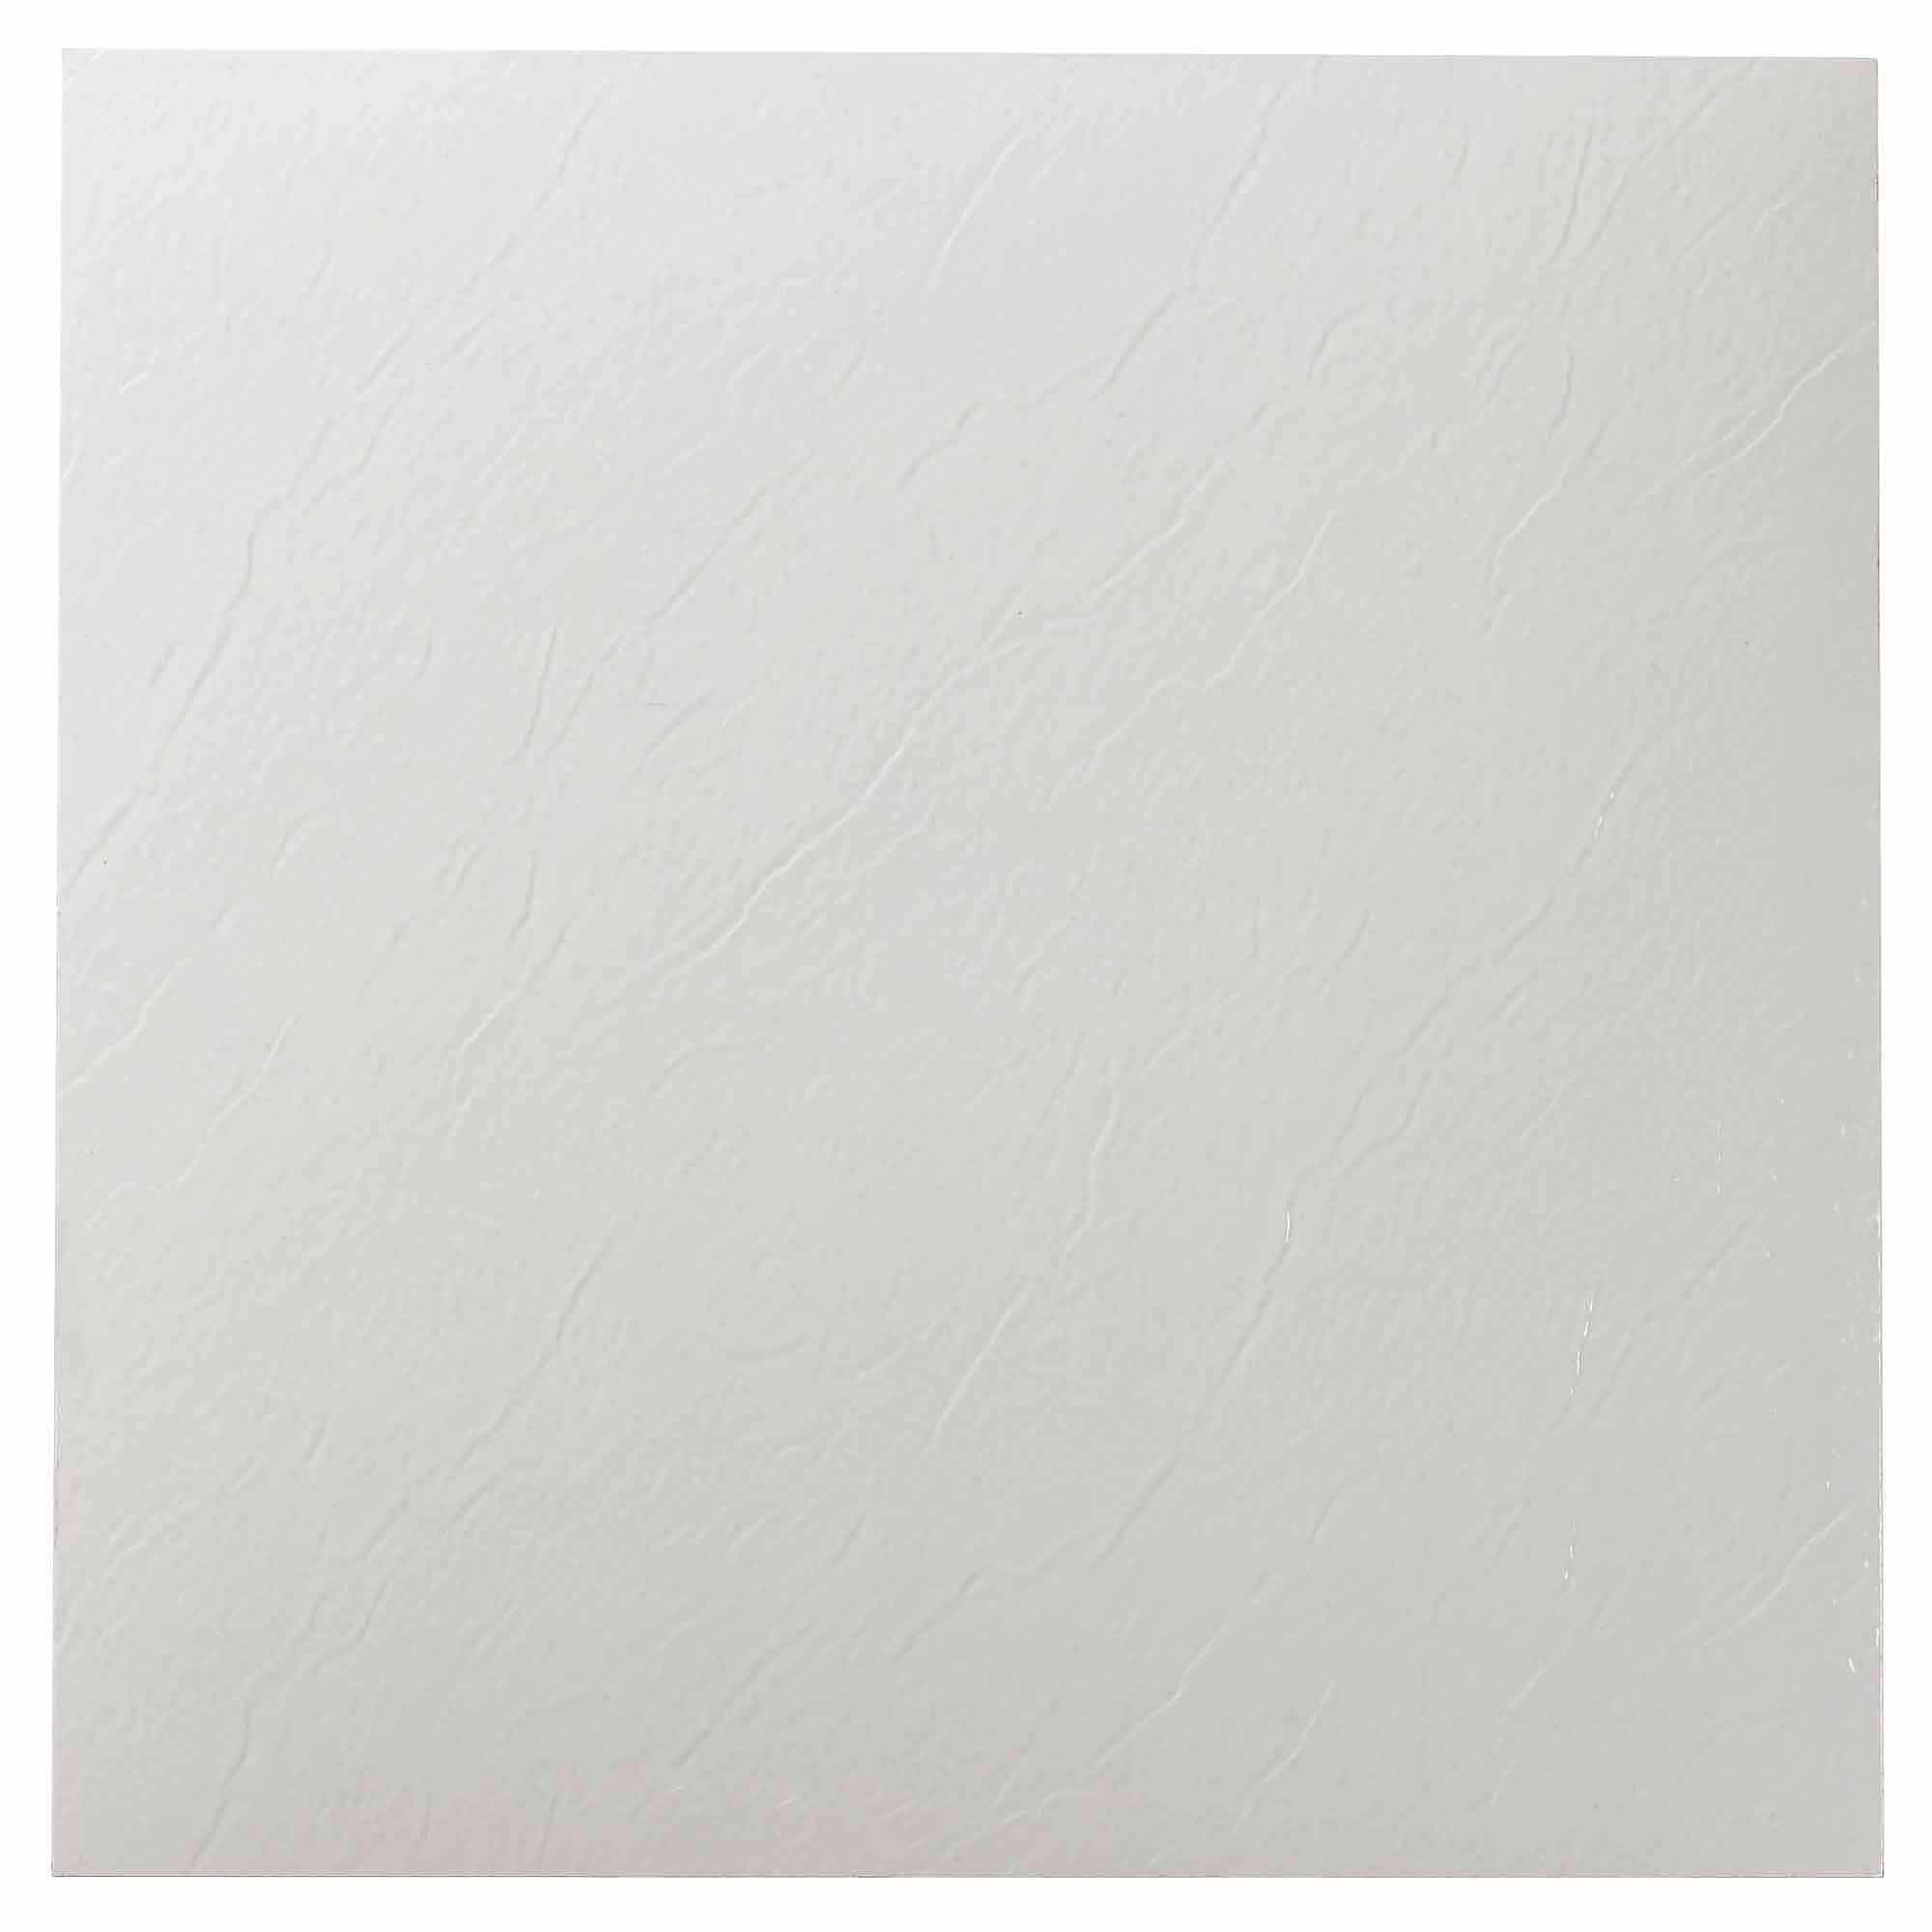 White Tile Custom Nexus White 12X12 Self Adhesive Vinyl Floor Tile  20 Tiles20 Sq Decorating Inspiration